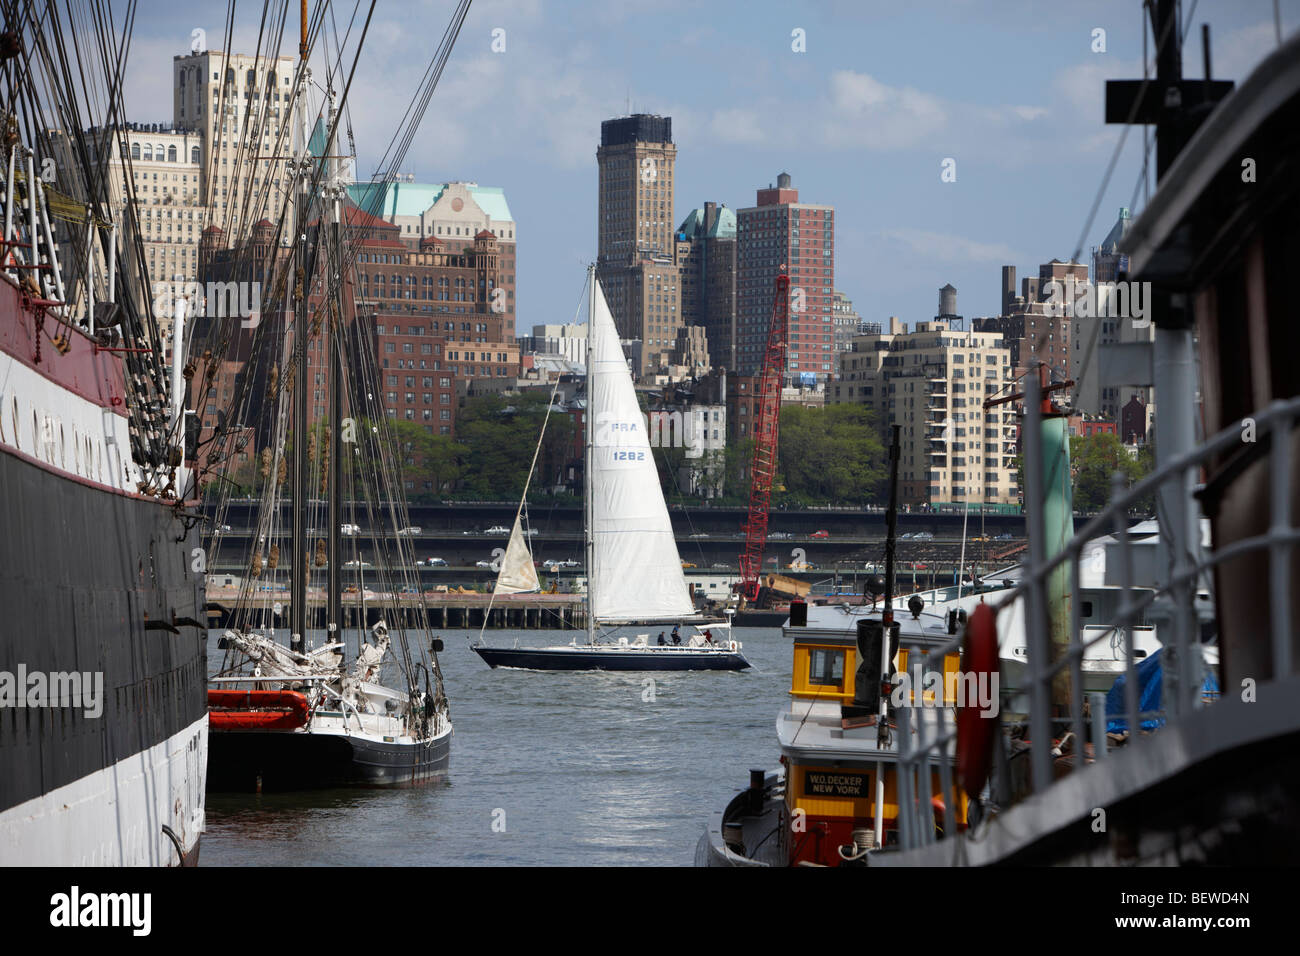 Sailing vessels at the South Street Seaport, New York City, USA - Stock Image